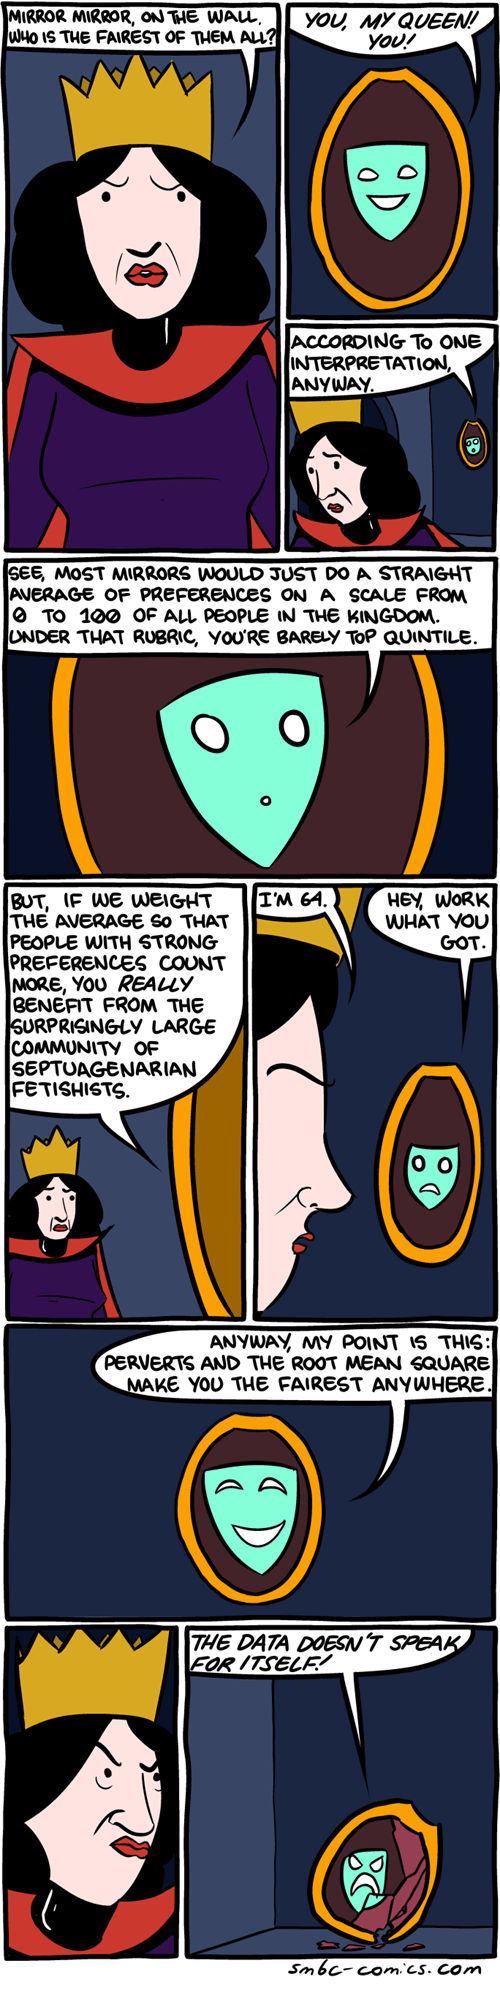 queen mirrors snow white math web comics